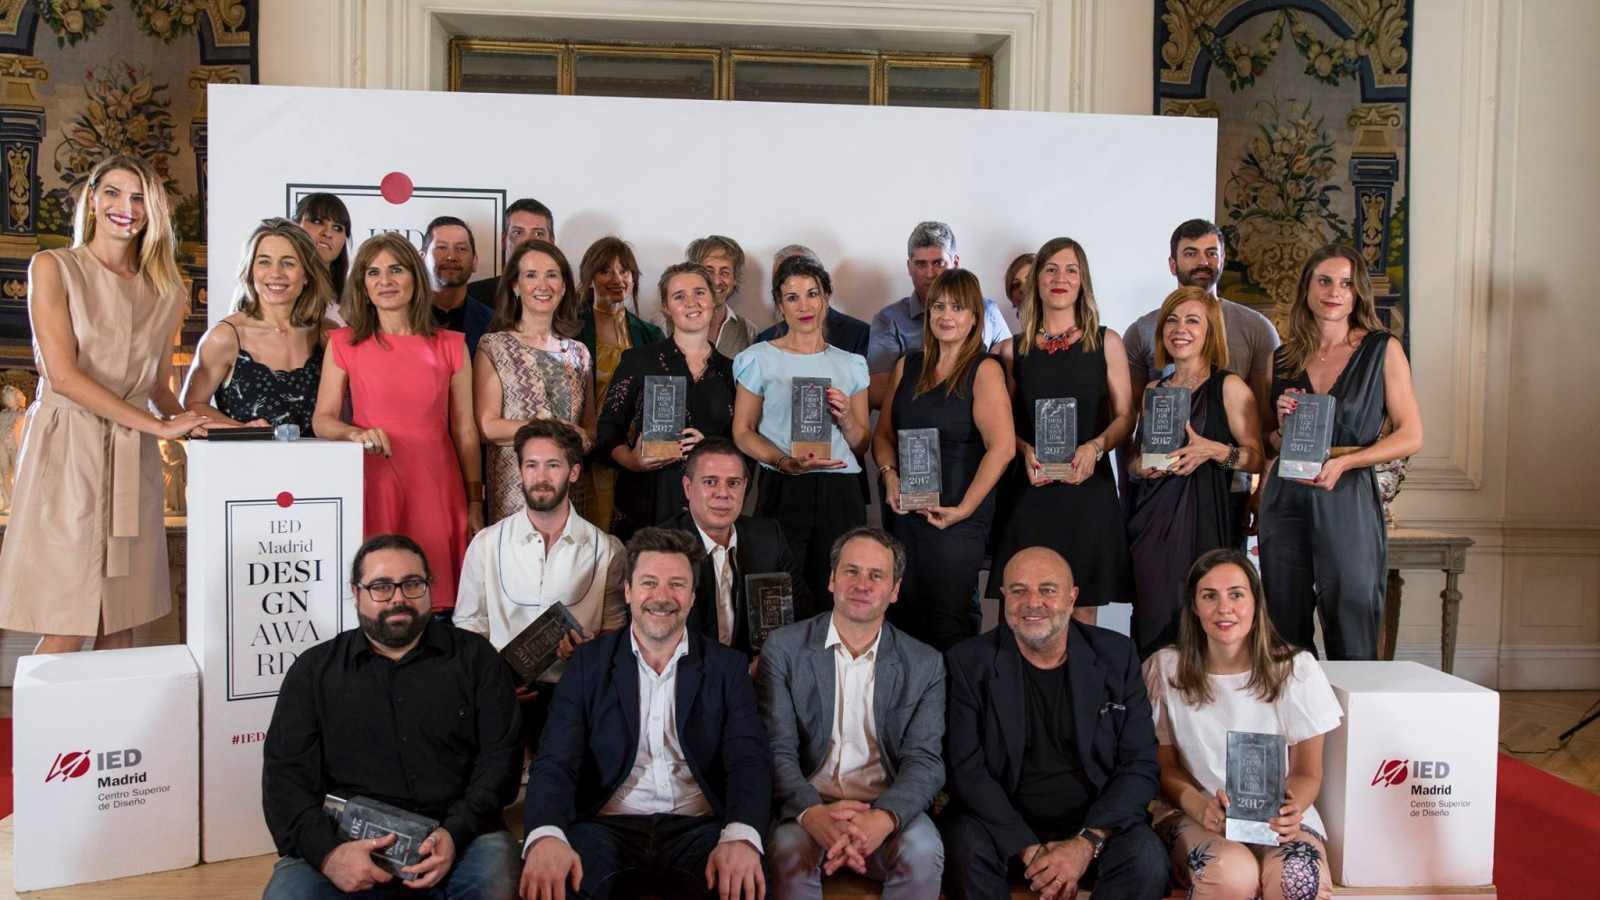 ied design awards the creative talent awards ied madrid